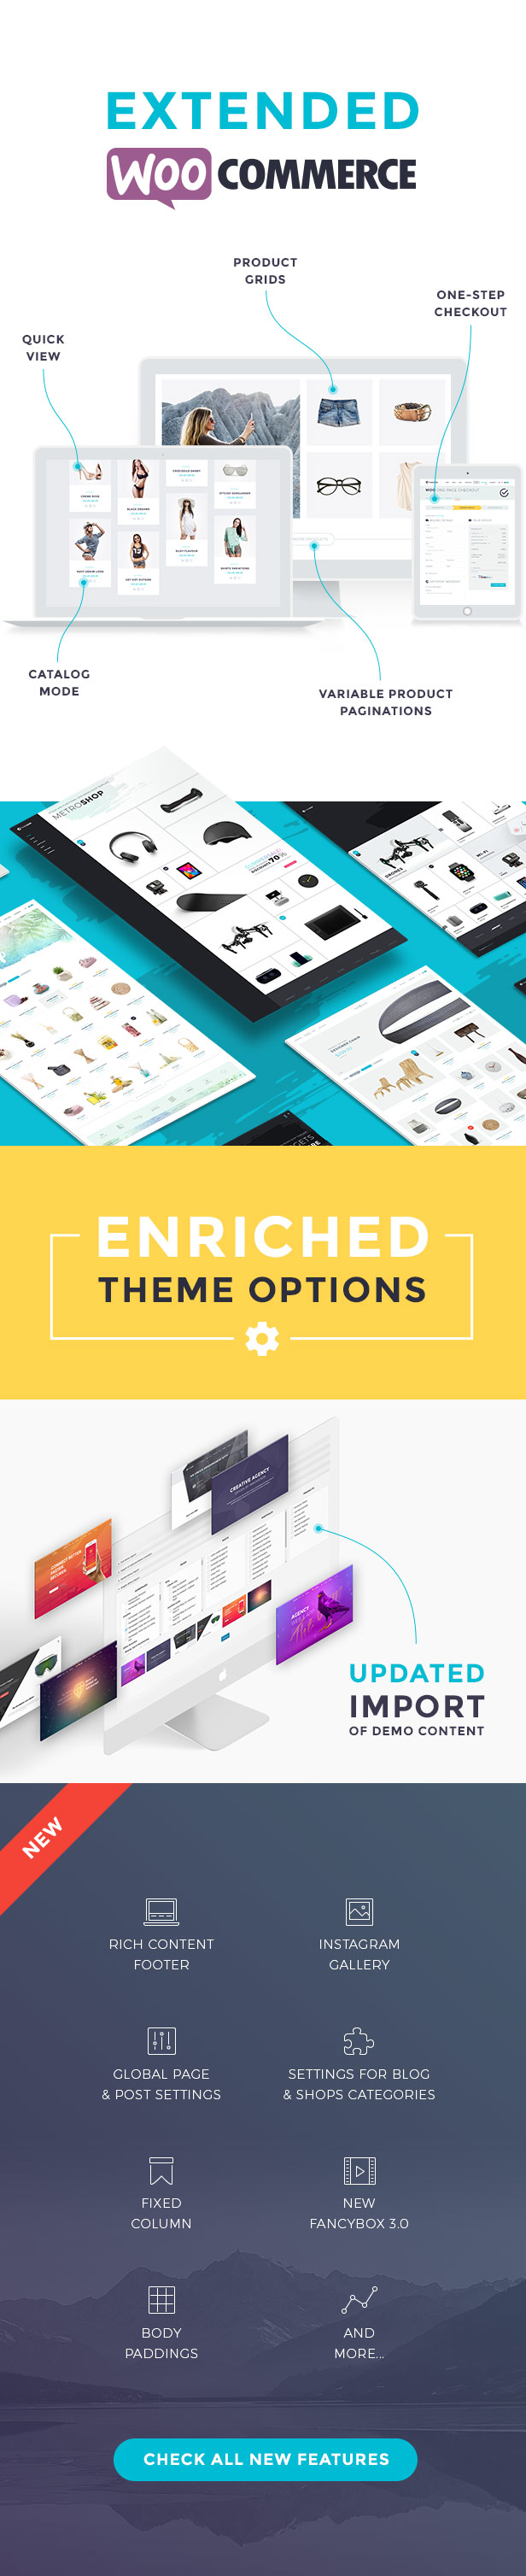 TheGem - Creative Multi-Purpose High-Performance WordPress Theme - 7